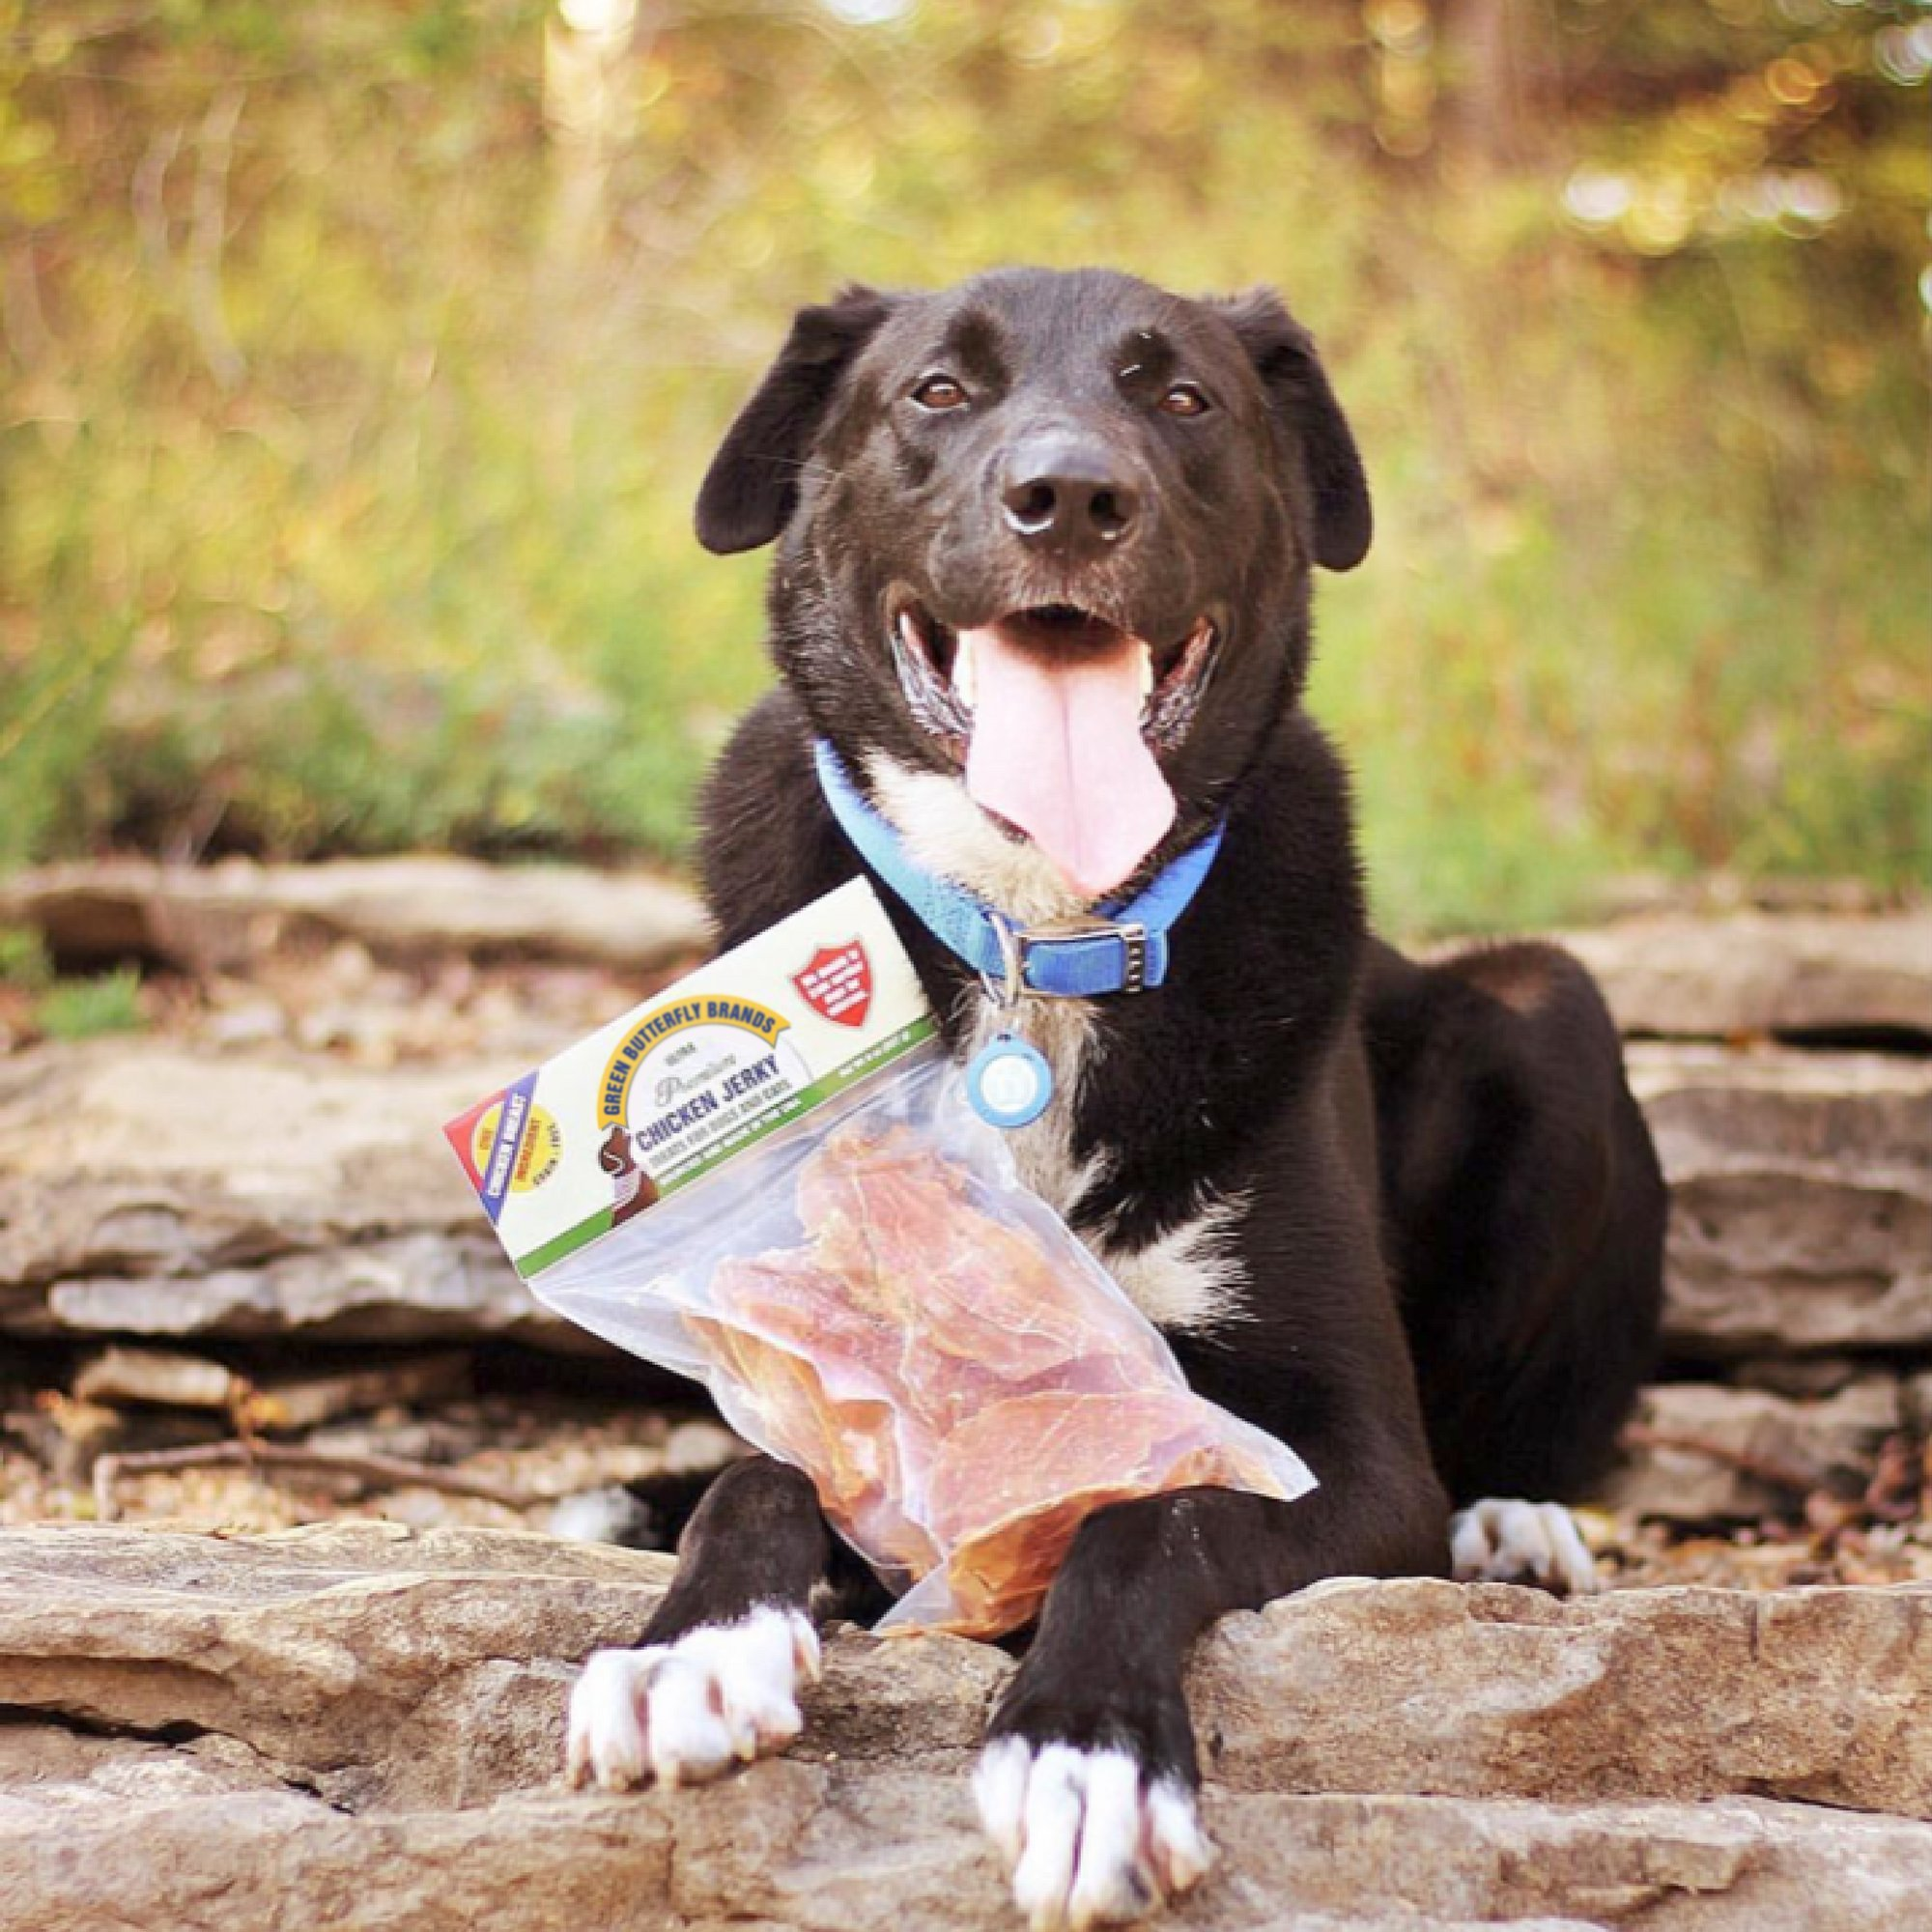 Green Butterfly Brands Chicken Jerky - Dog Treats Made in USA Only - One Ingredient: USDA Grade A Chicken Breast - No Additives or Preservatives - Grain Free, All Natural Premium Strips 8 oz. by Green Butterfly Brands (Image #4)